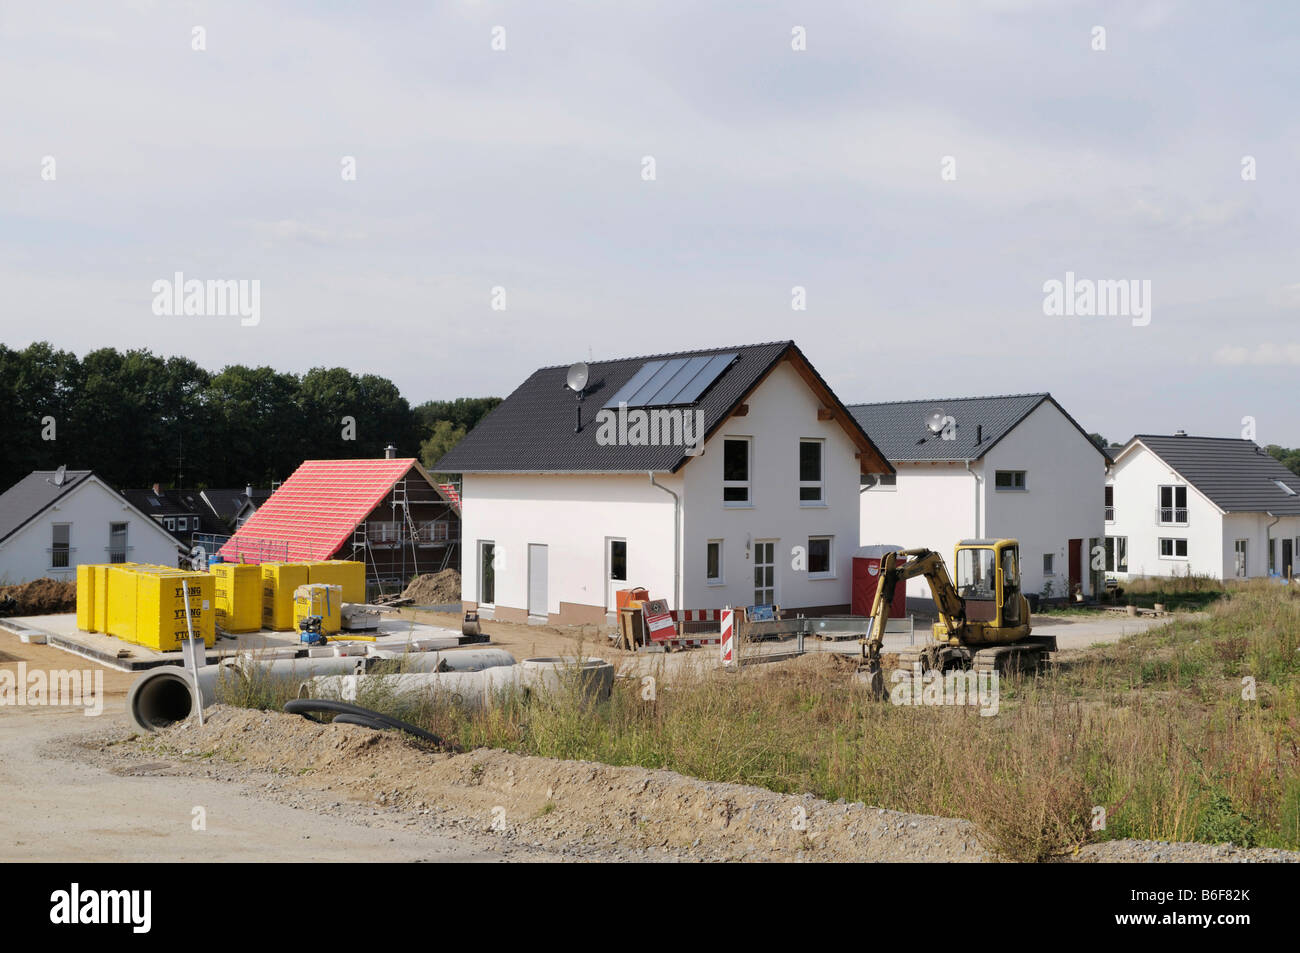 View of new housing estate, in front sewer pipes and an excavator for development, Solingen, North Rhine-Westphalia, - Stock Image